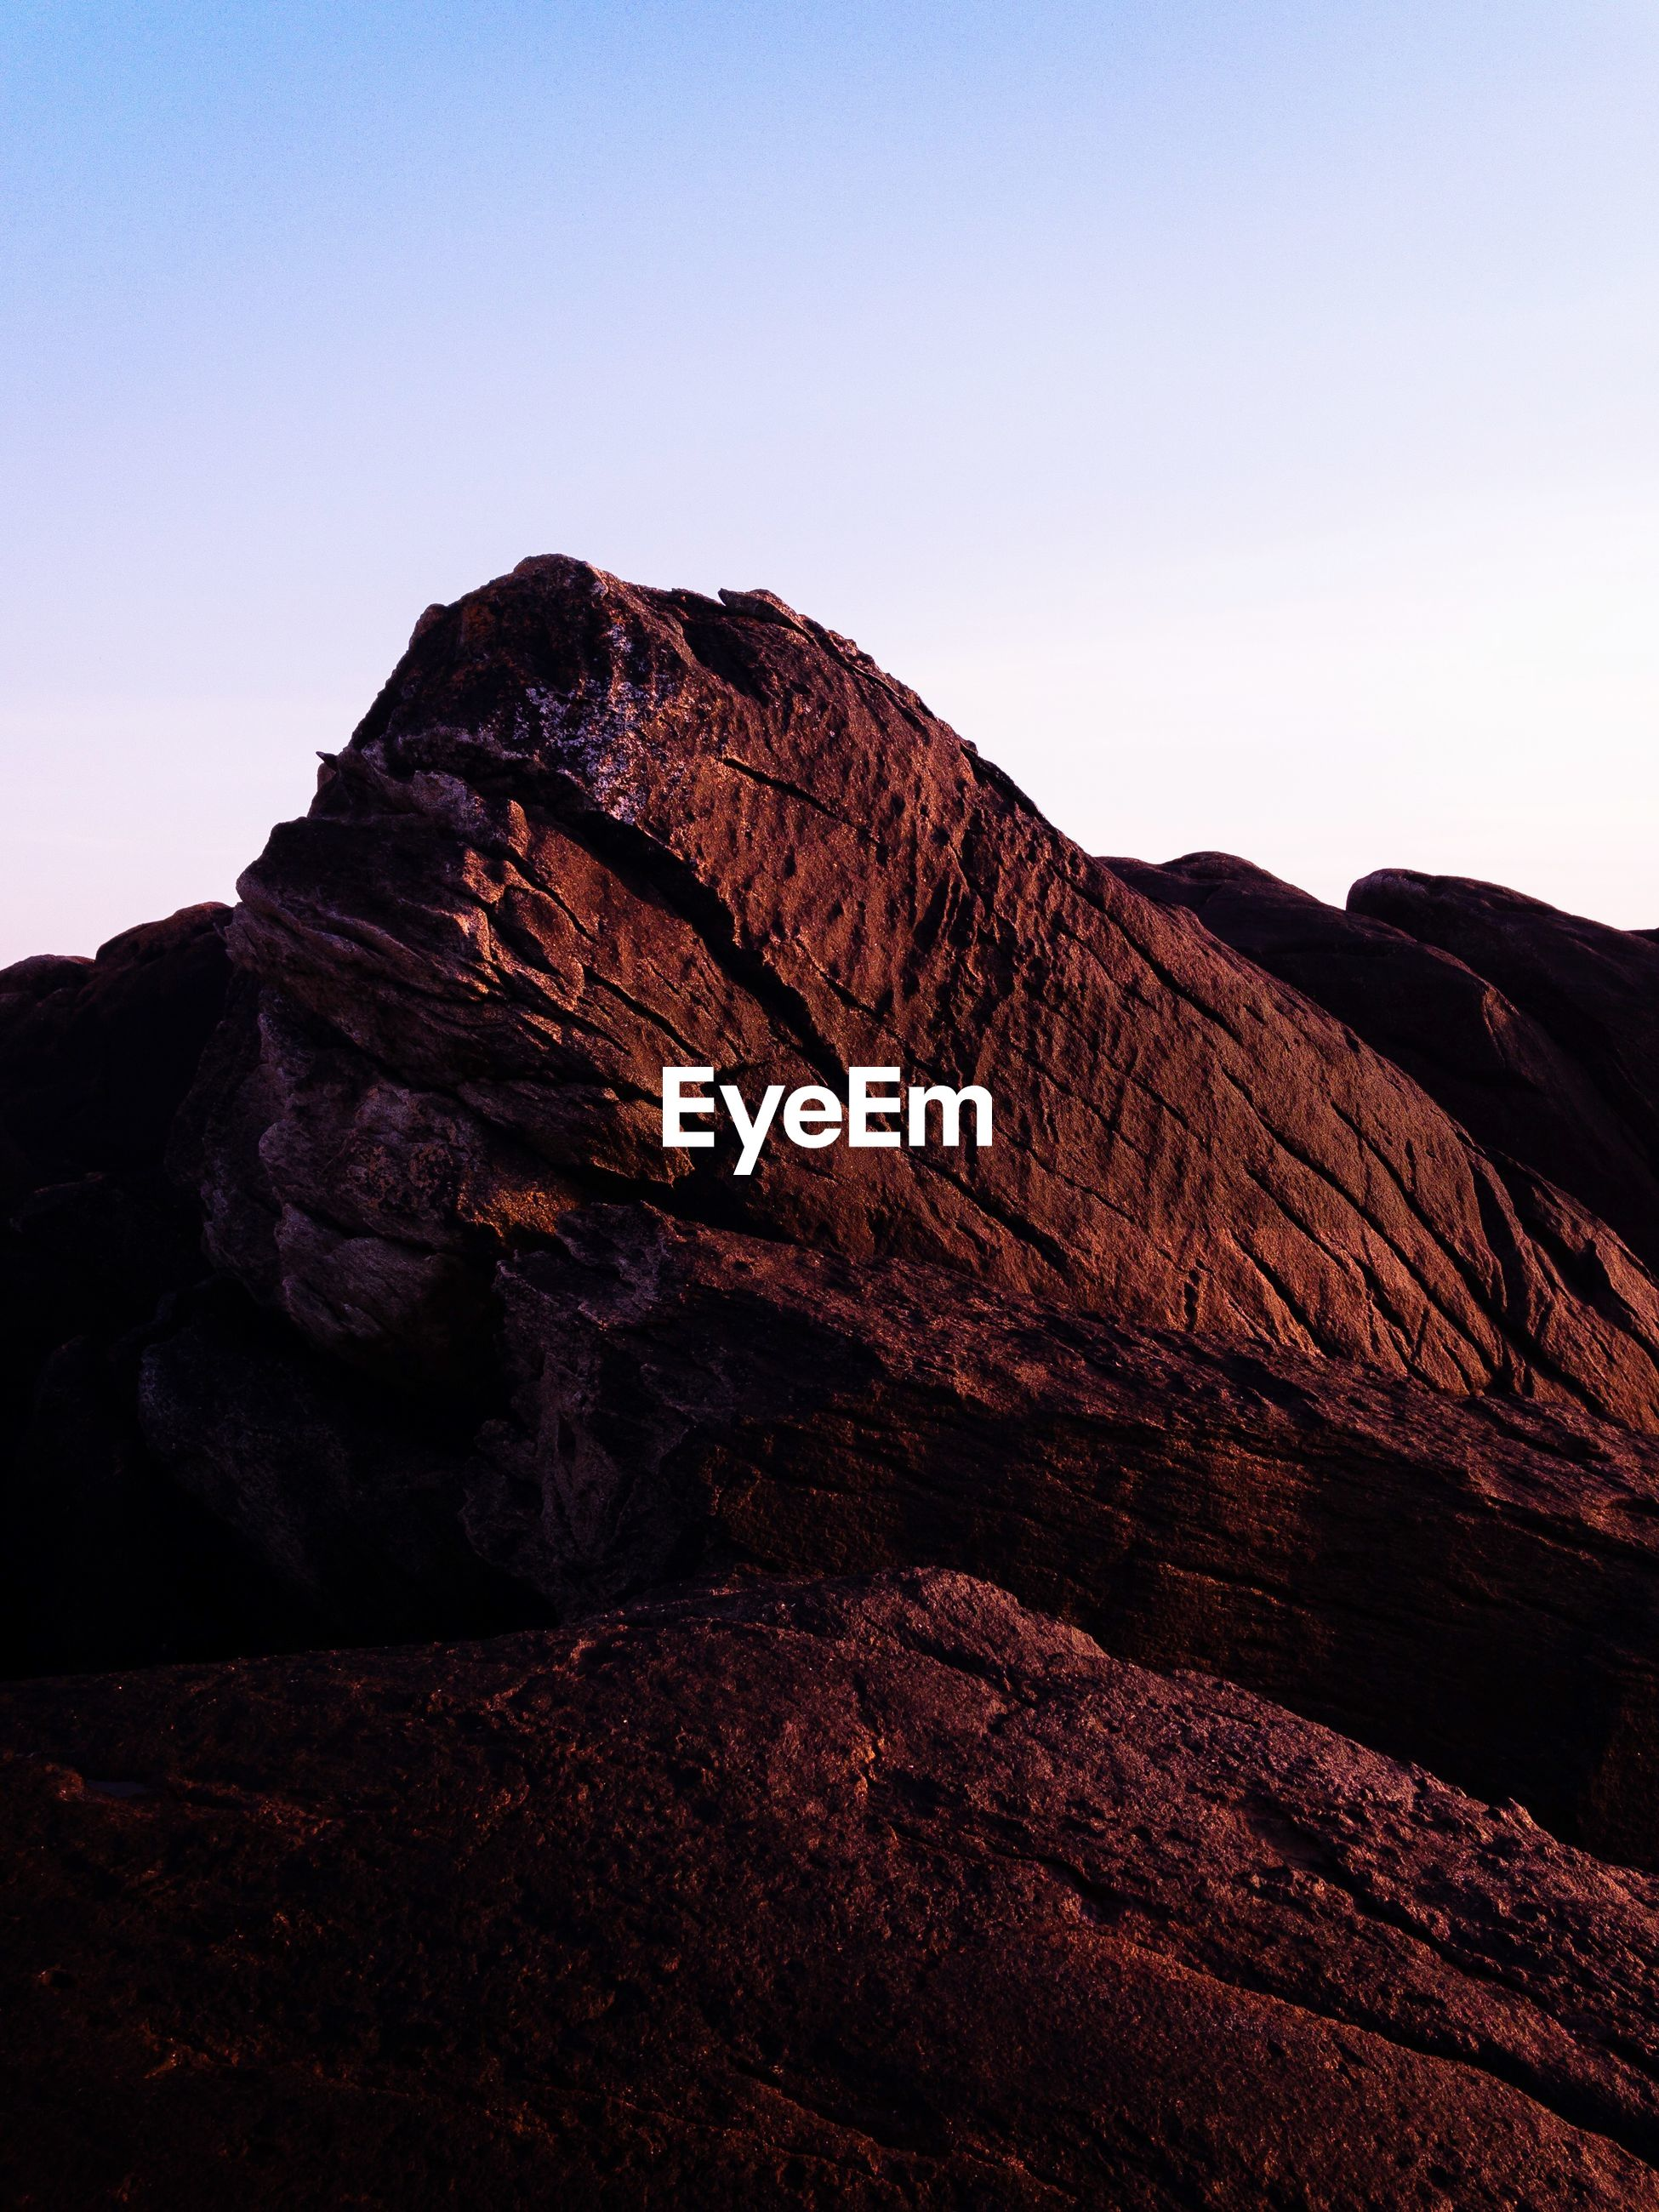 sky, rock, mountain, beauty in nature, tranquility, tranquil scene, scenics - nature, clear sky, rock - object, solid, no people, nature, non-urban scene, copy space, physical geography, geology, rock formation, environment, landscape, idyllic, outdoors, formation, arid climate, eroded, mountain peak